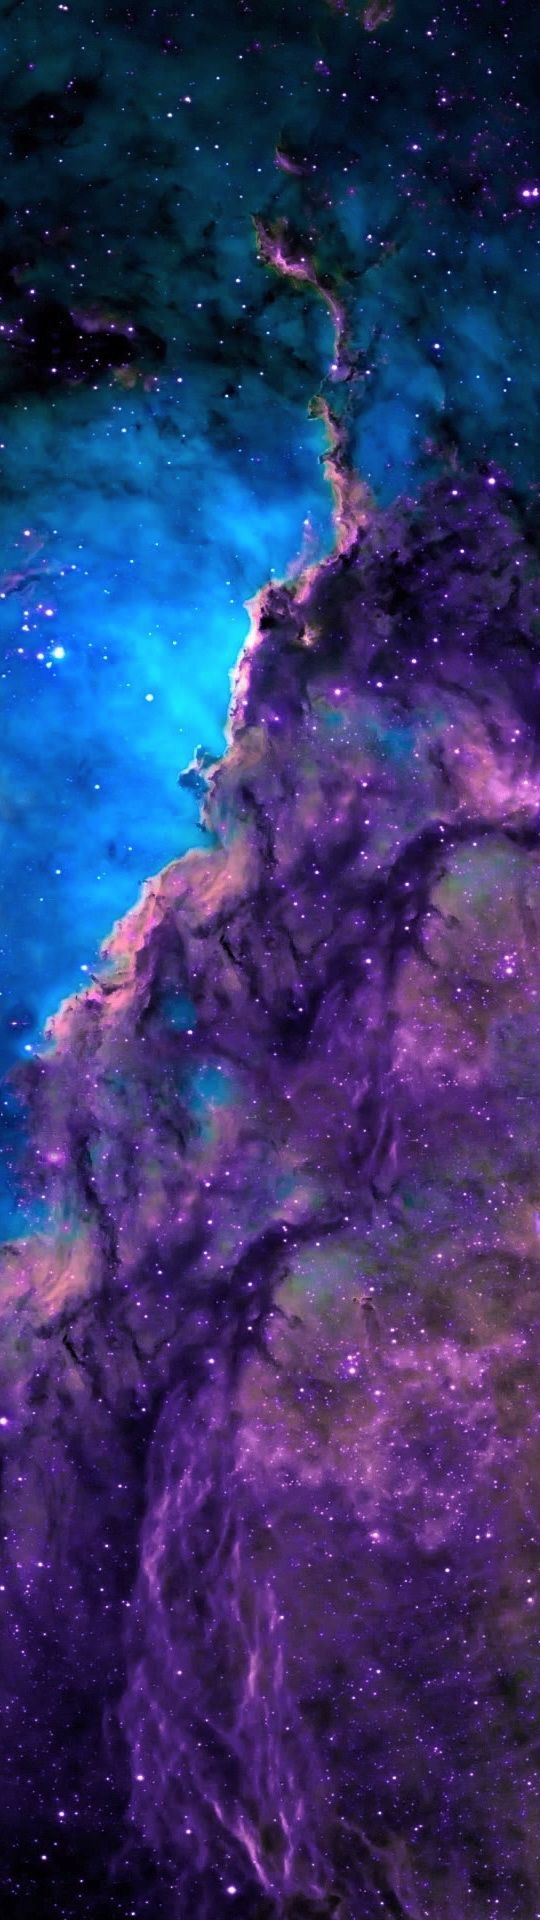 Possible section of the Rosette Nebula?... Nebula of Stars and Colorful Gas - Long, Tall, Vertical Pins